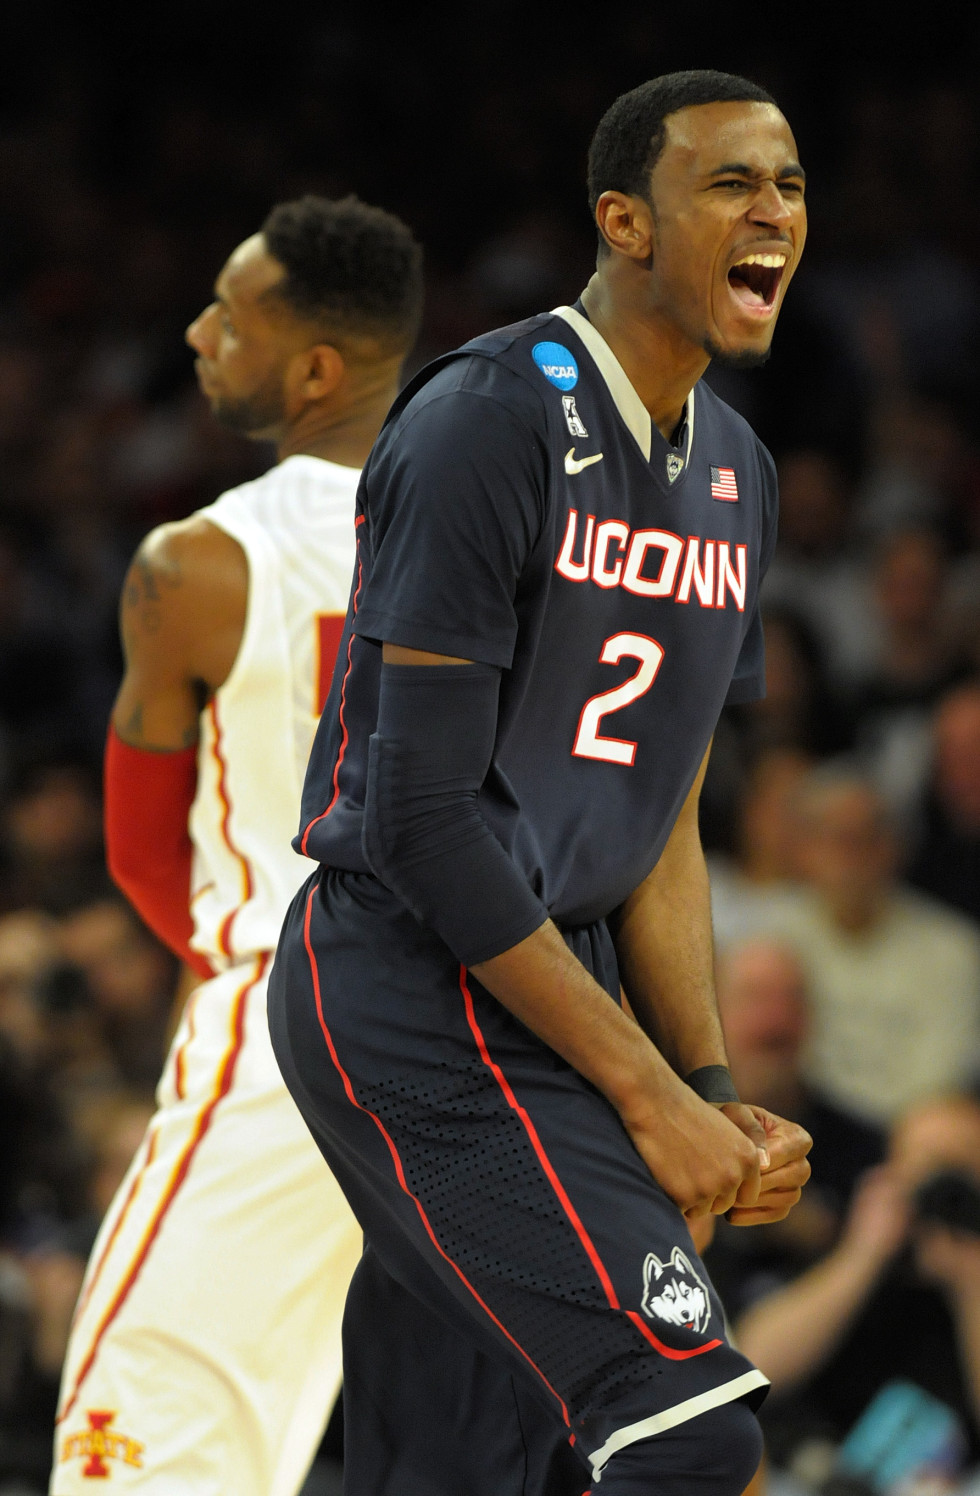 UConn Huskies forward DeAndre Daniels, 2, reacts after hitting a three-point shot as Iowa State Cyclones guard DeAndre Kane, 50, looks away during the second half.